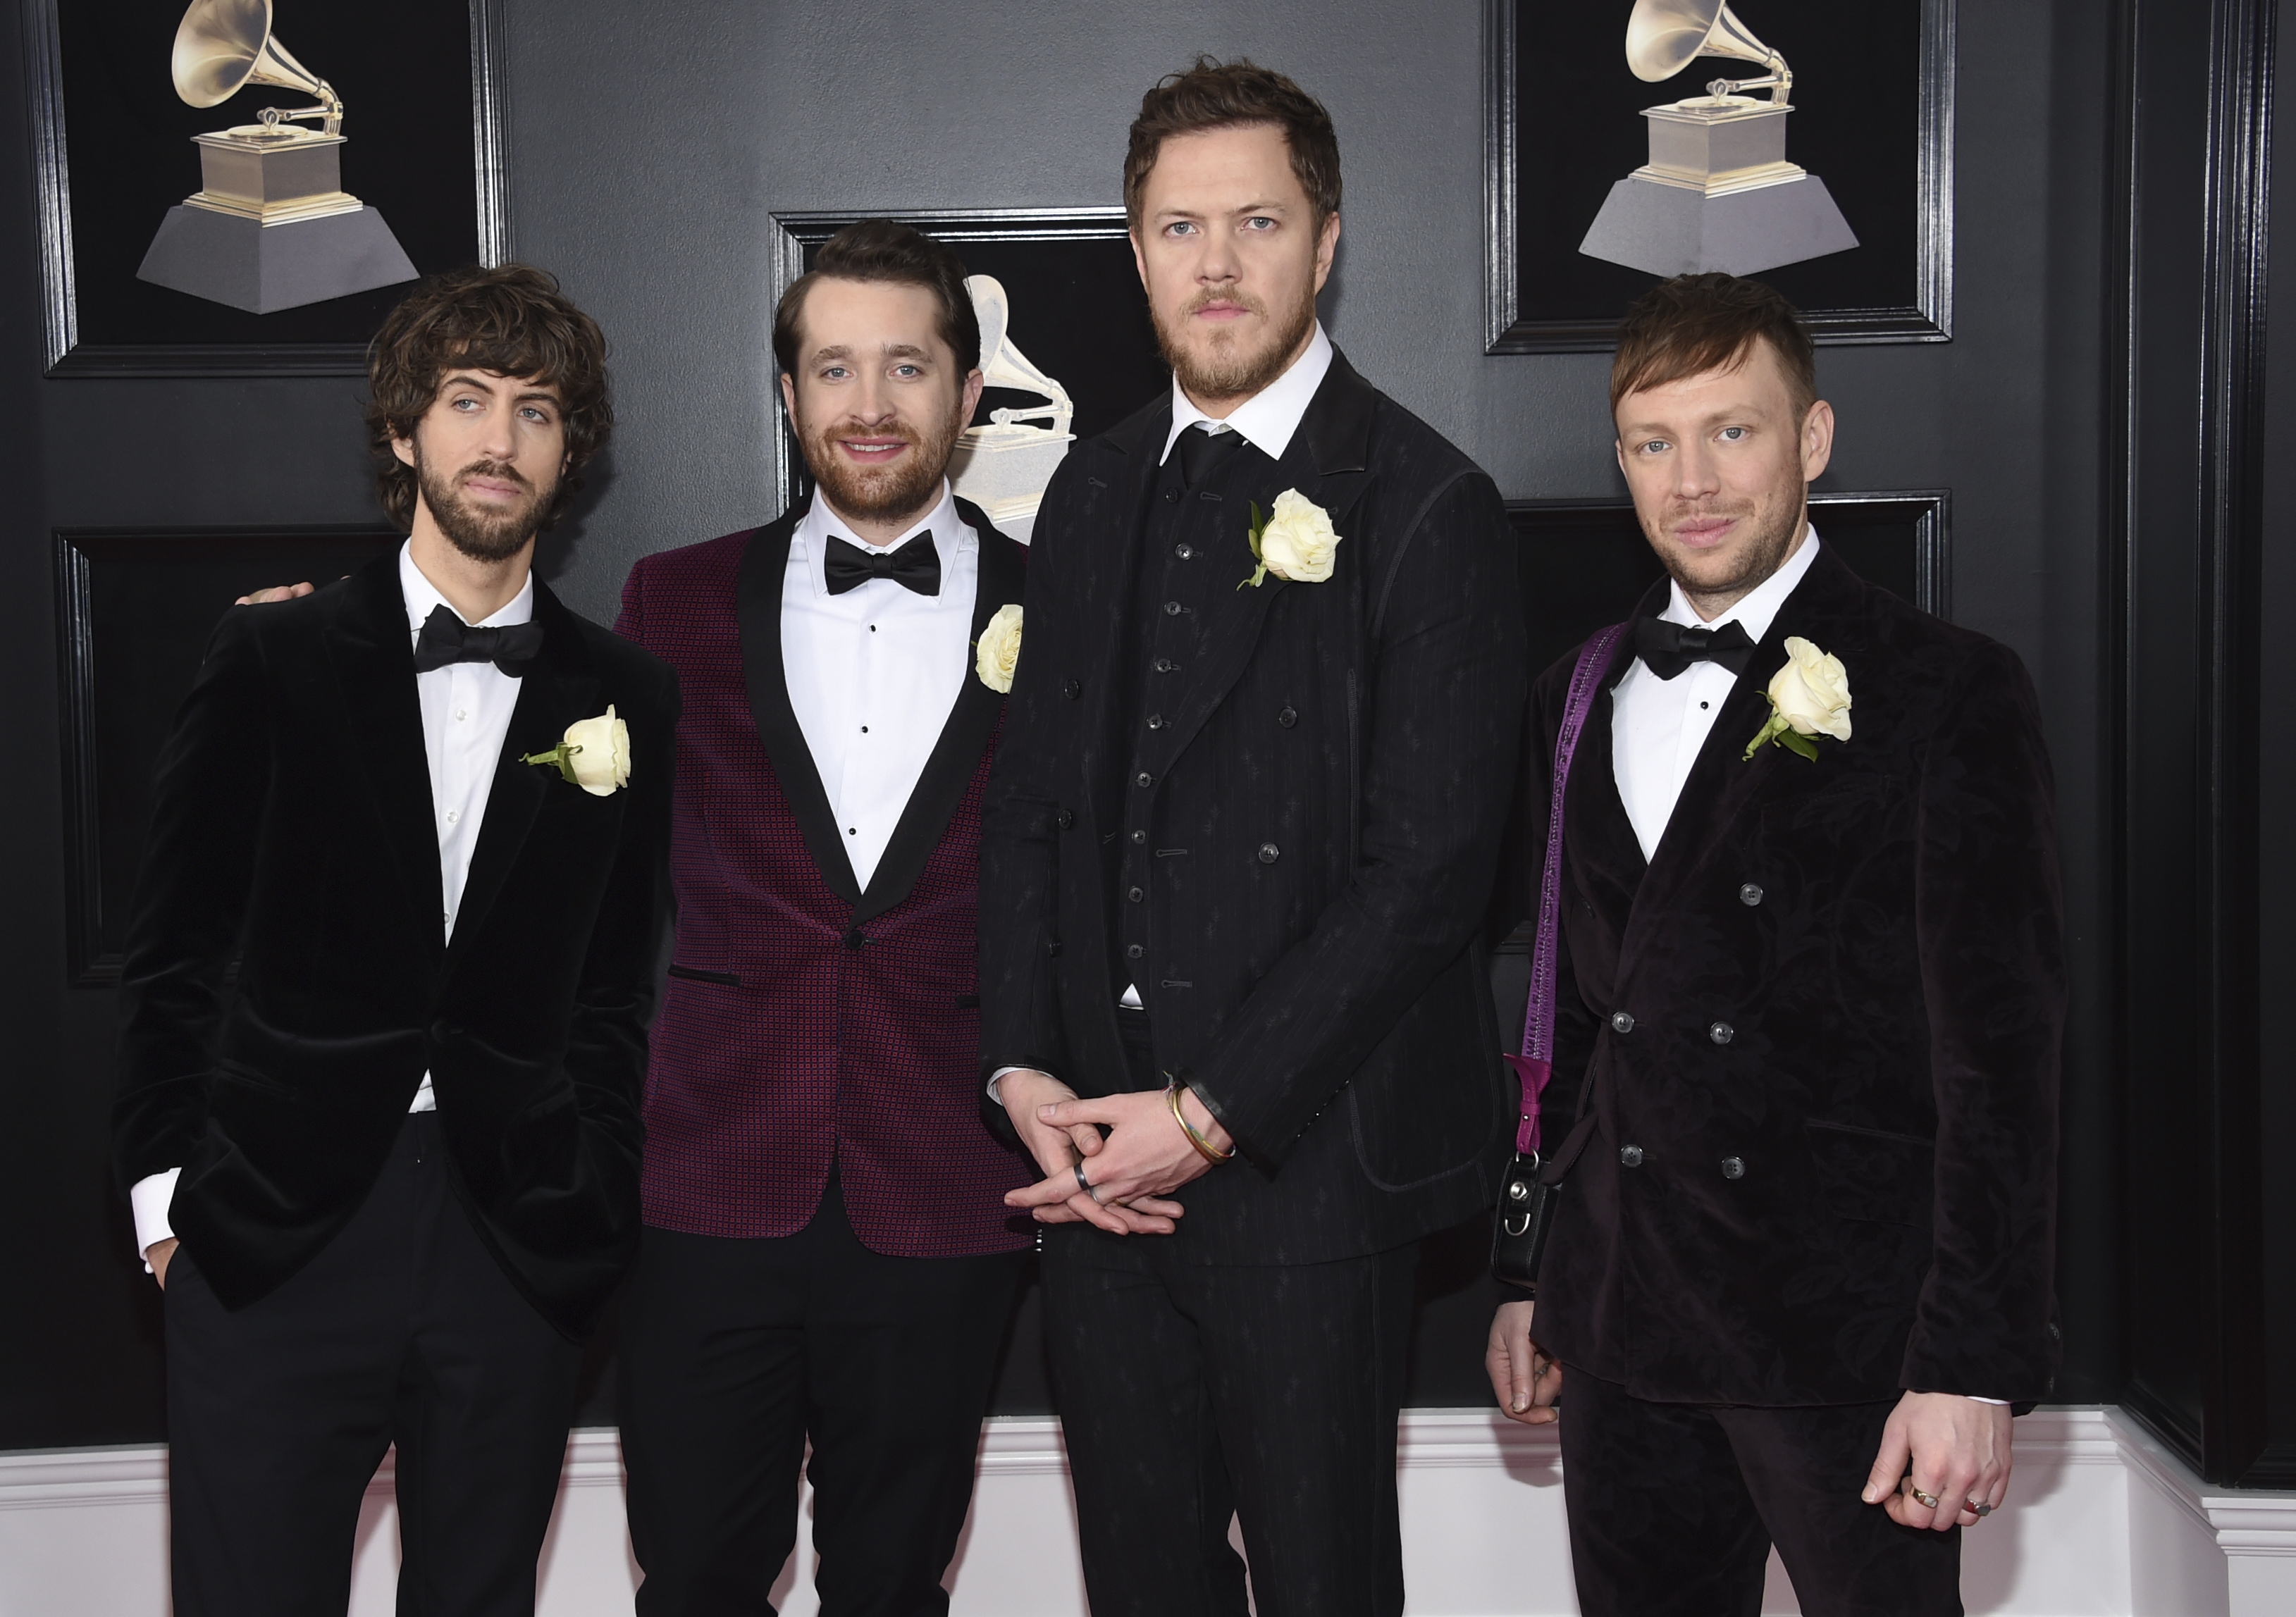 <div class='meta'><div class='origin-logo' data-origin='AP'></div><span class='caption-text' data-credit='Evan Agostini/Invision/AP'>Wayne Sermon, from left, Daniel Platzman, Dan Reynolds, Ben McKee of Imagine Dragons arrives at the 60th annual Grammy Awards at Madison Square Garden on Sunday, Jan. 28, 2018.</span></div>